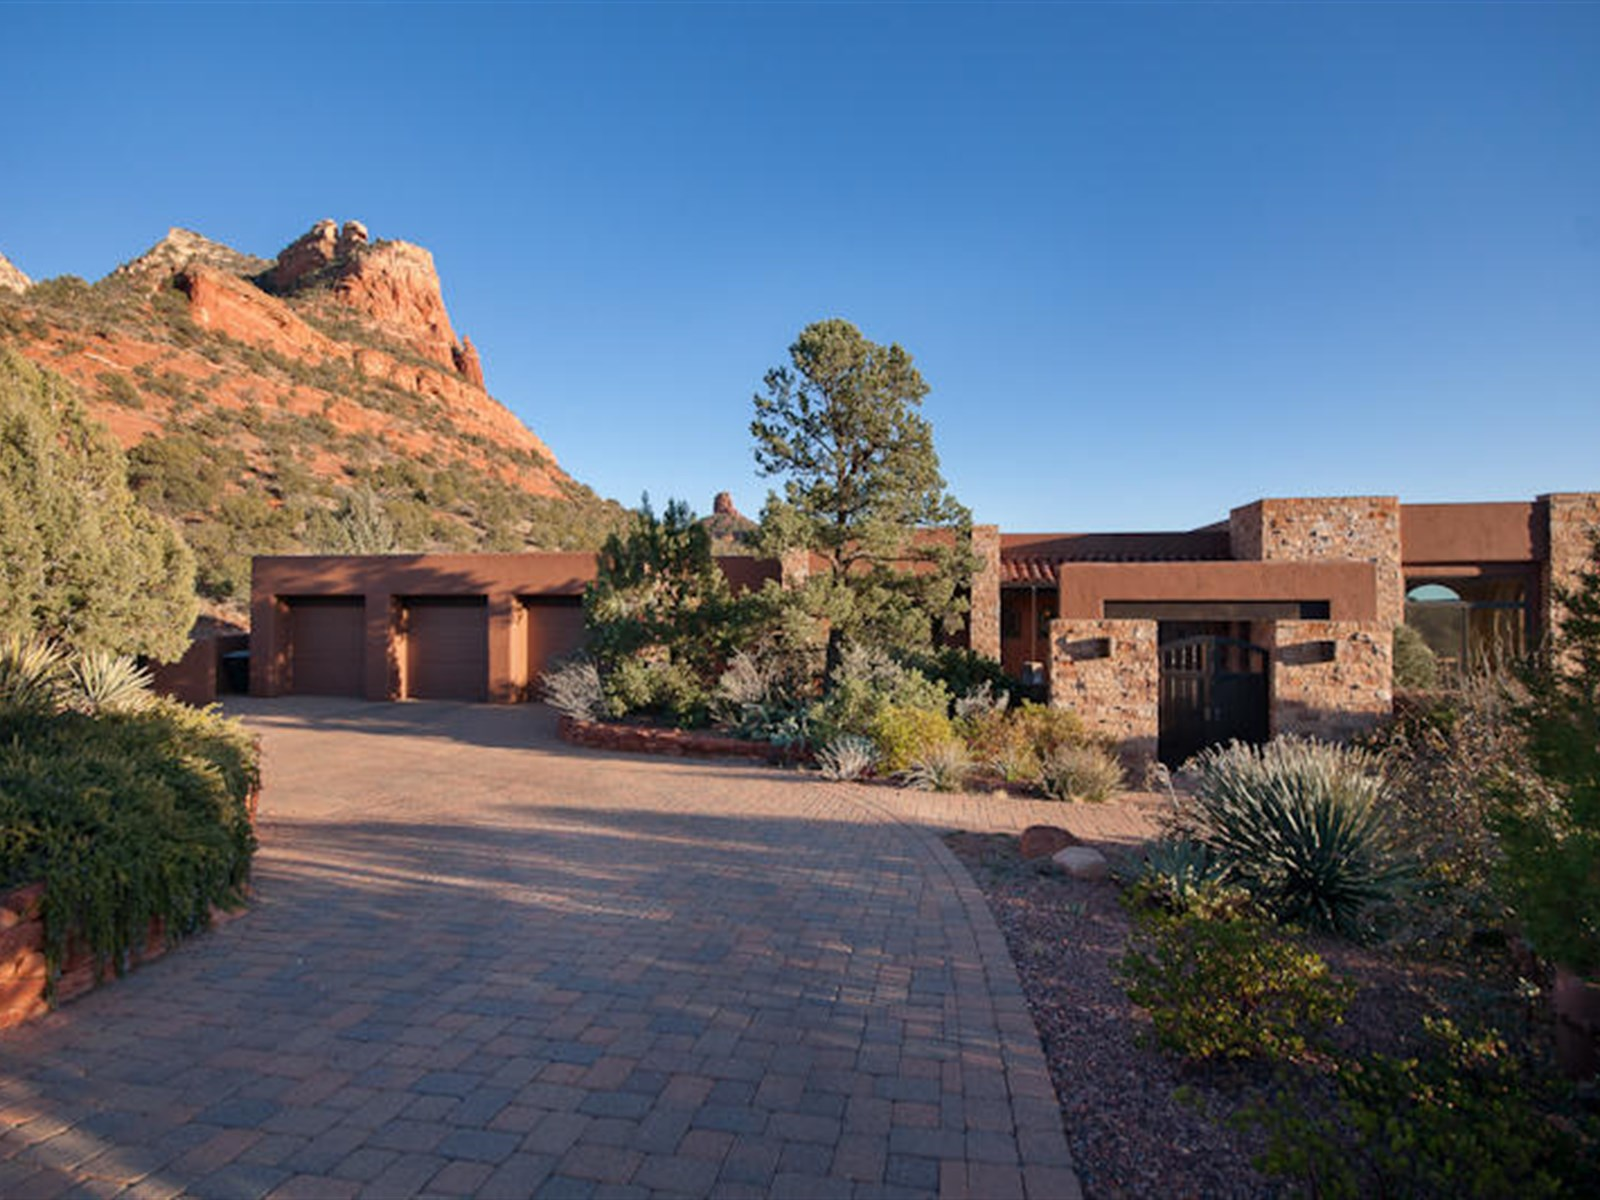 Property For Sale at Exquisite & Private Contemporary Southwest Home